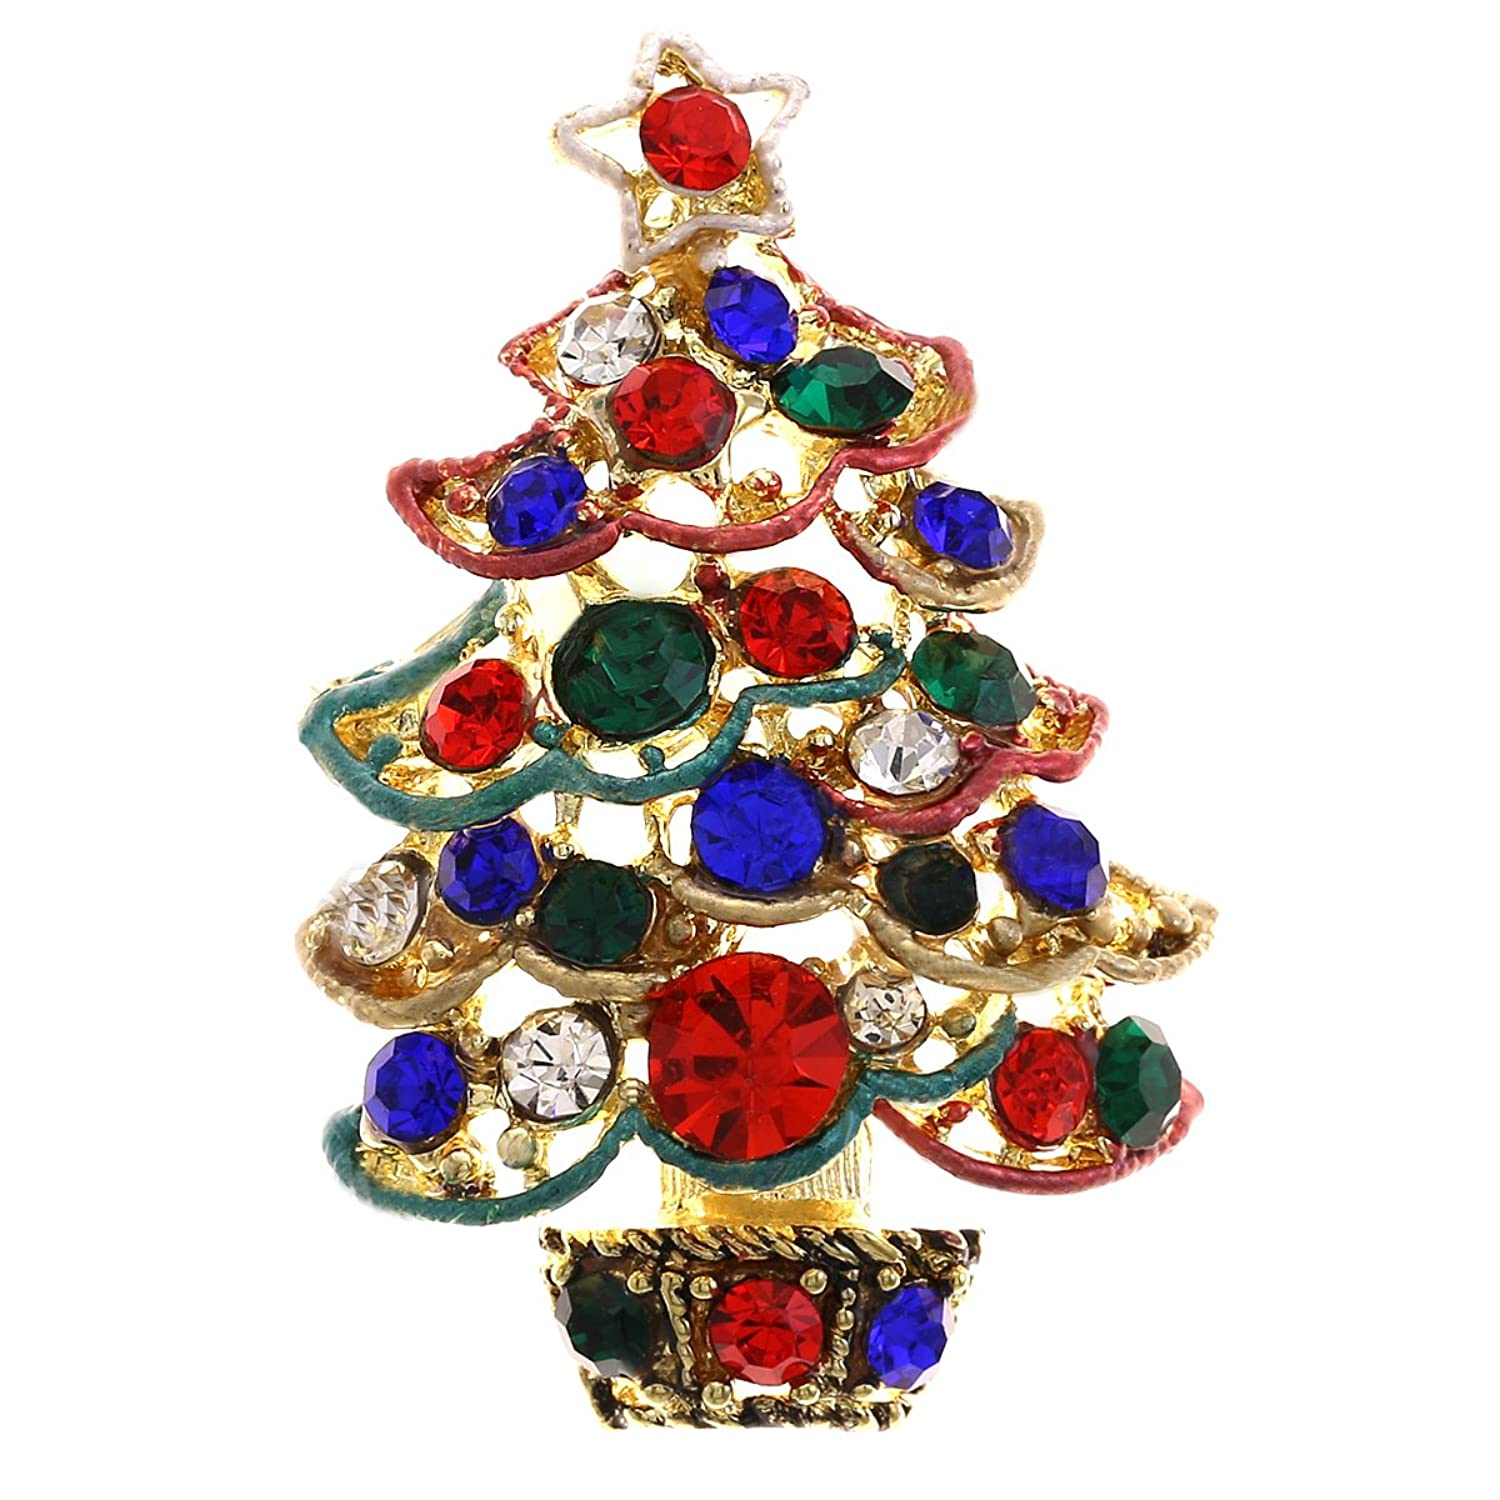 Amazon.com: Soulbreezecollection Christmas Tree Brooch Pin ...